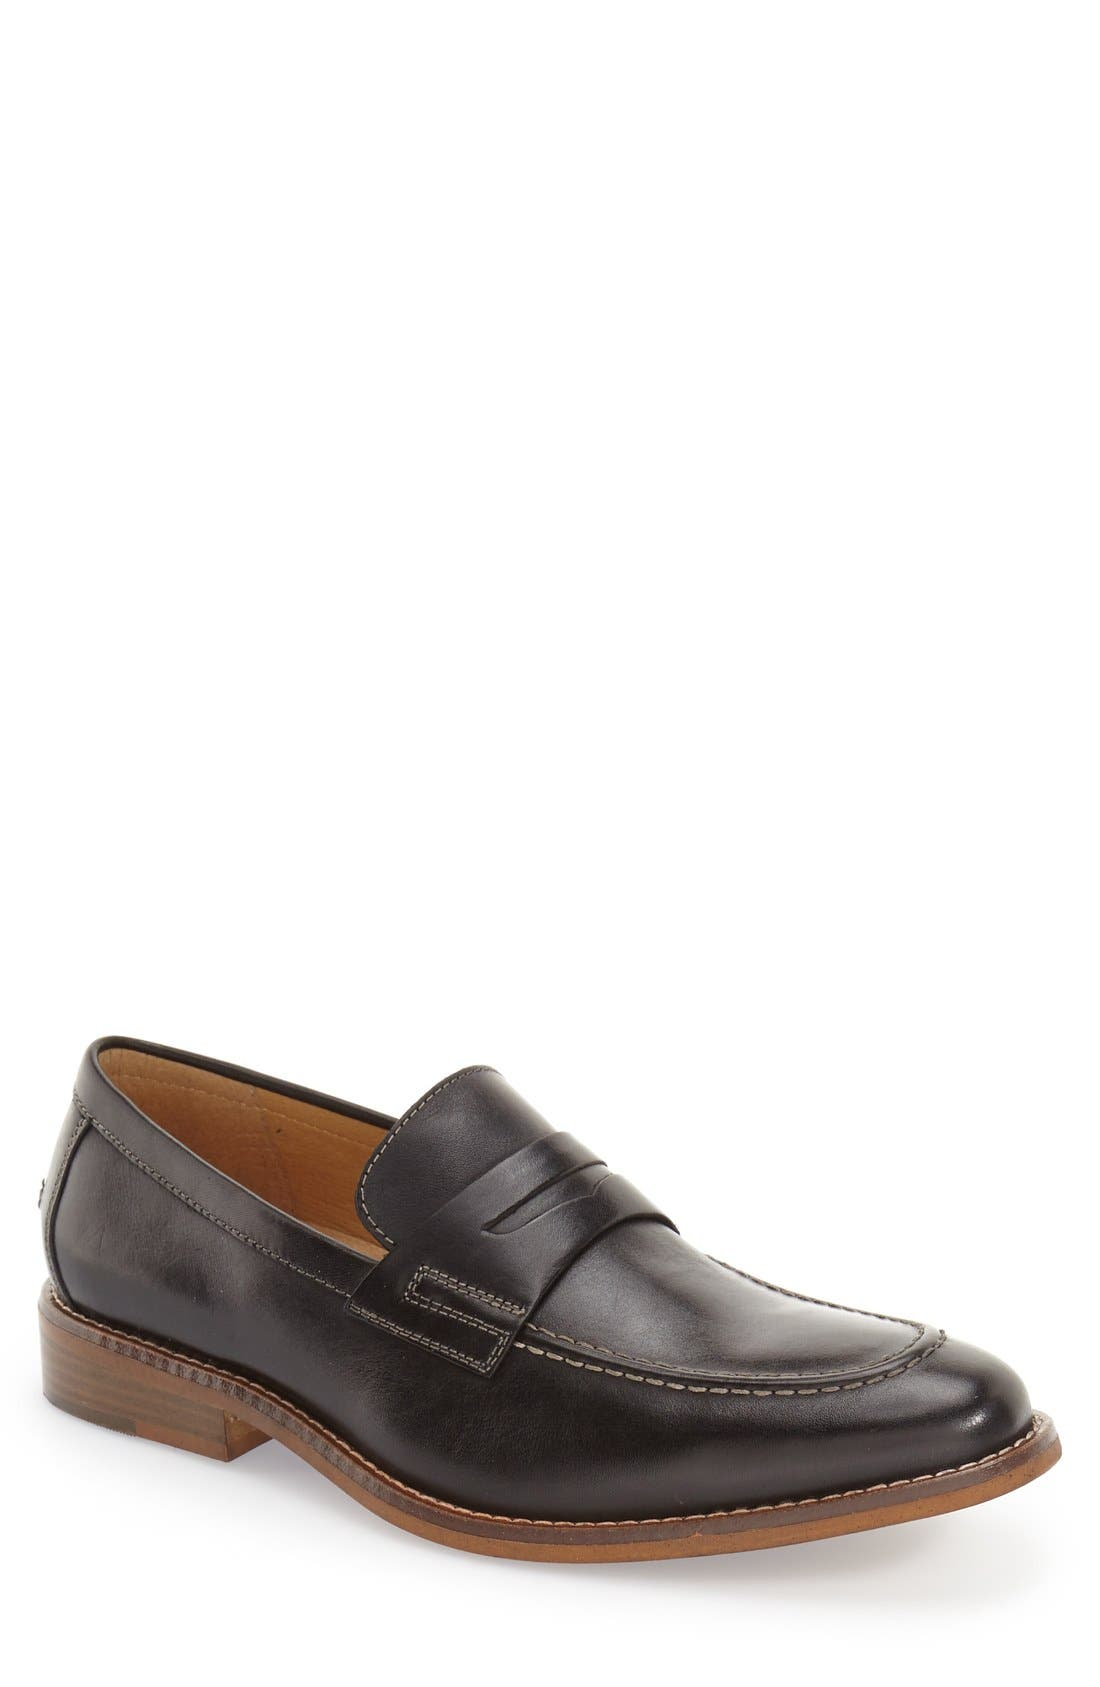 'Conner' Penny Loafer,                             Main thumbnail 1, color,                             Black